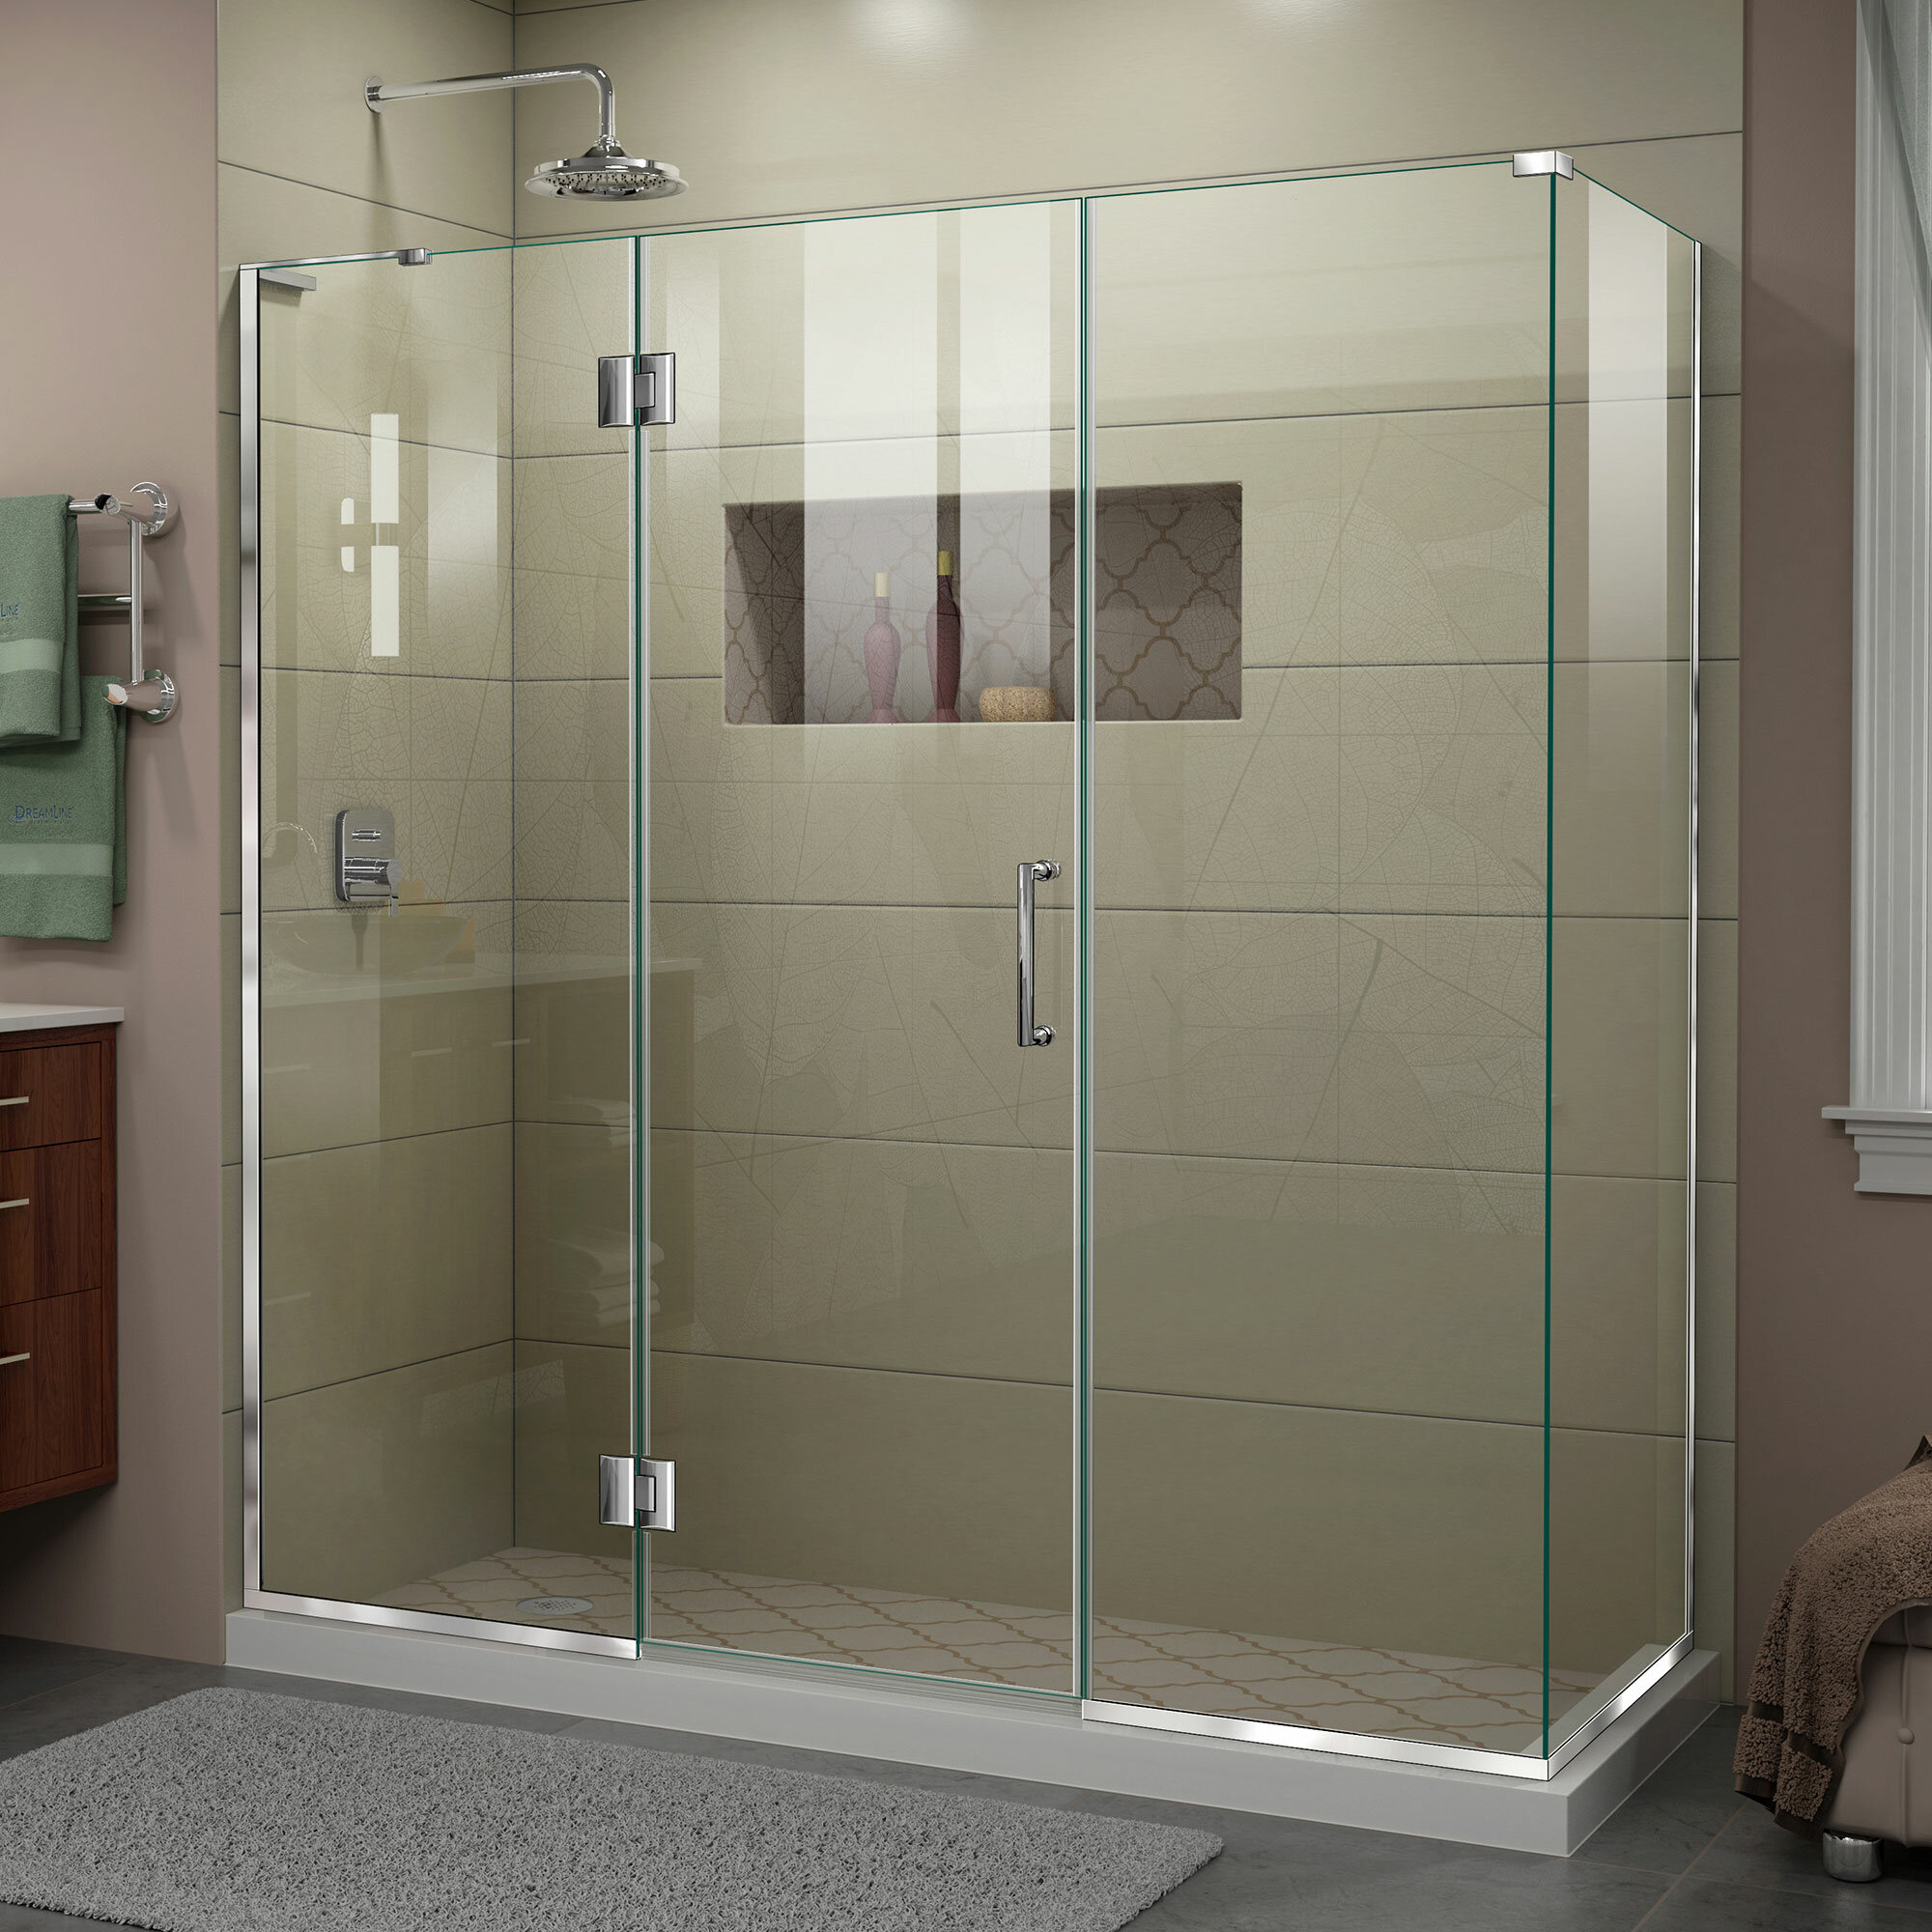 Unidoor X 69 5 X 72 Hinged Frameless Shower Door With Clearmax Technology